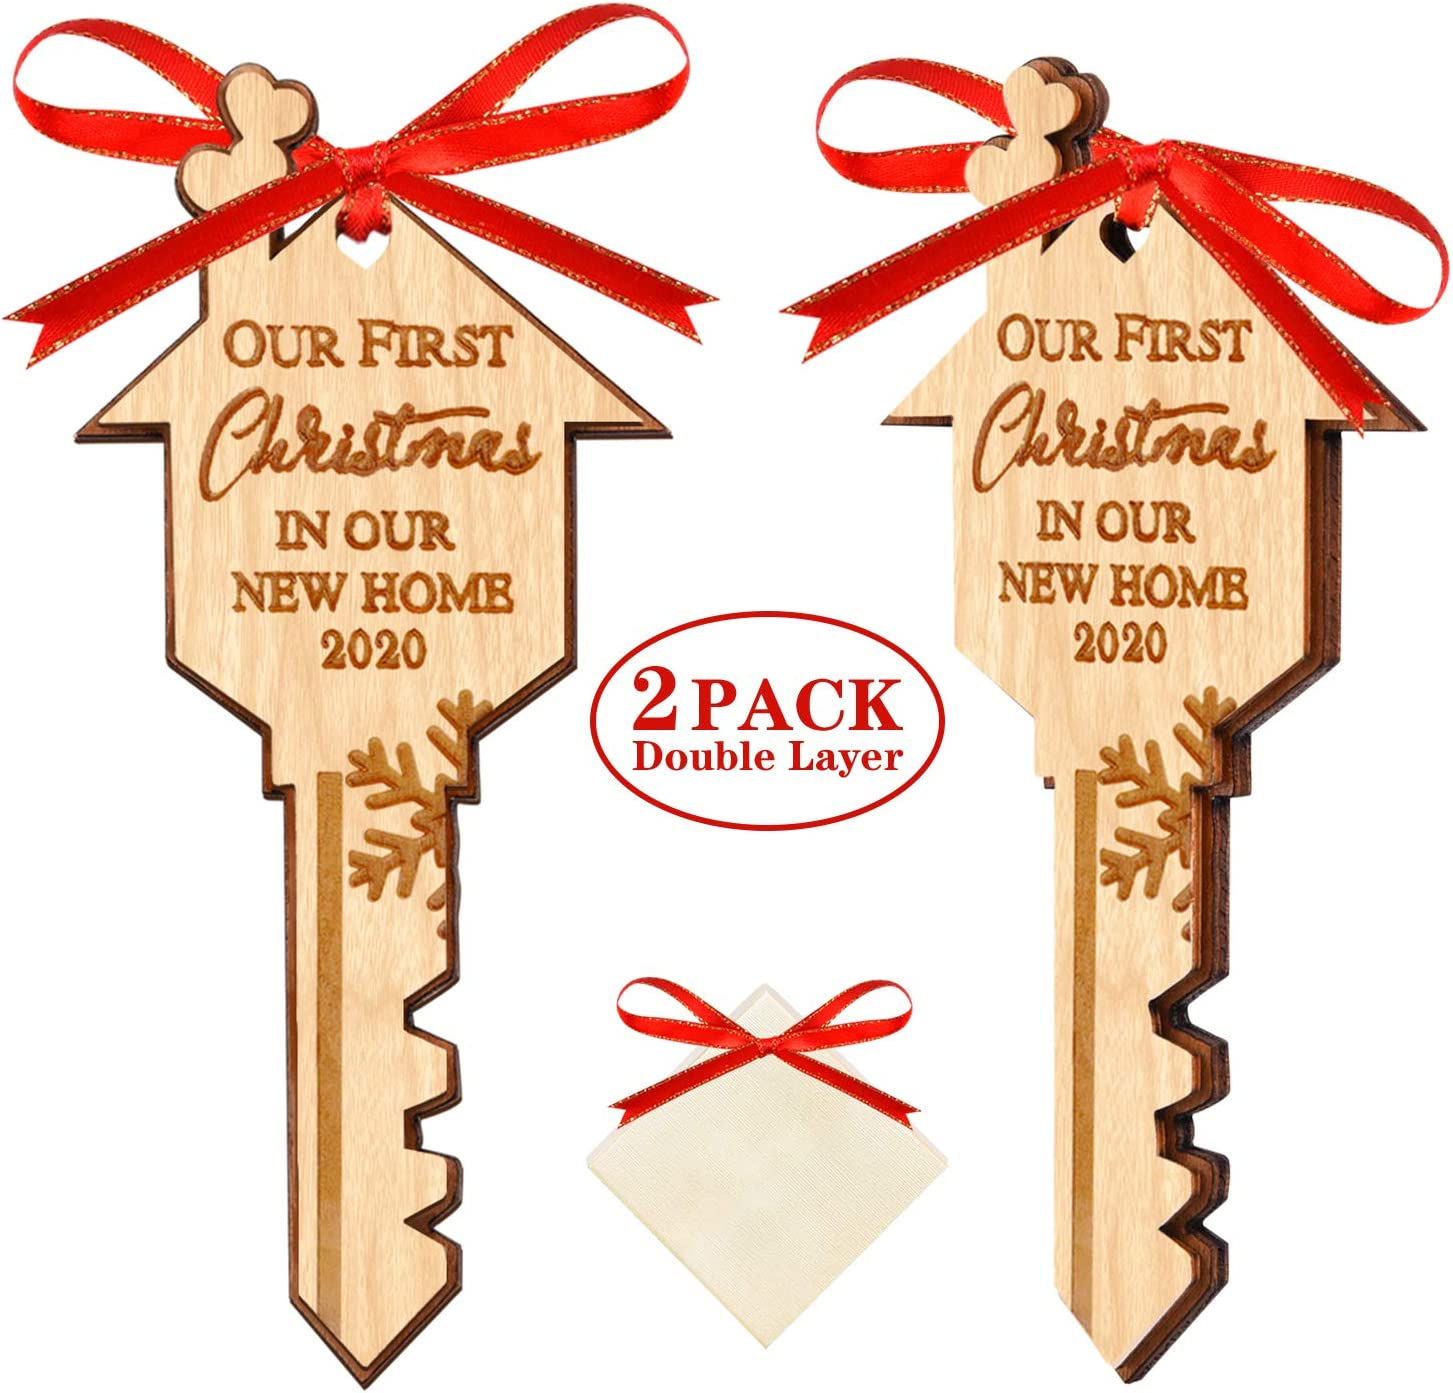 Our First Christmas in Our New Home 2020 Double Layer Christmas Wood Ornaments with Gift Box for Housewarming Xmas Tree Hanging Decoration - 2 Pack